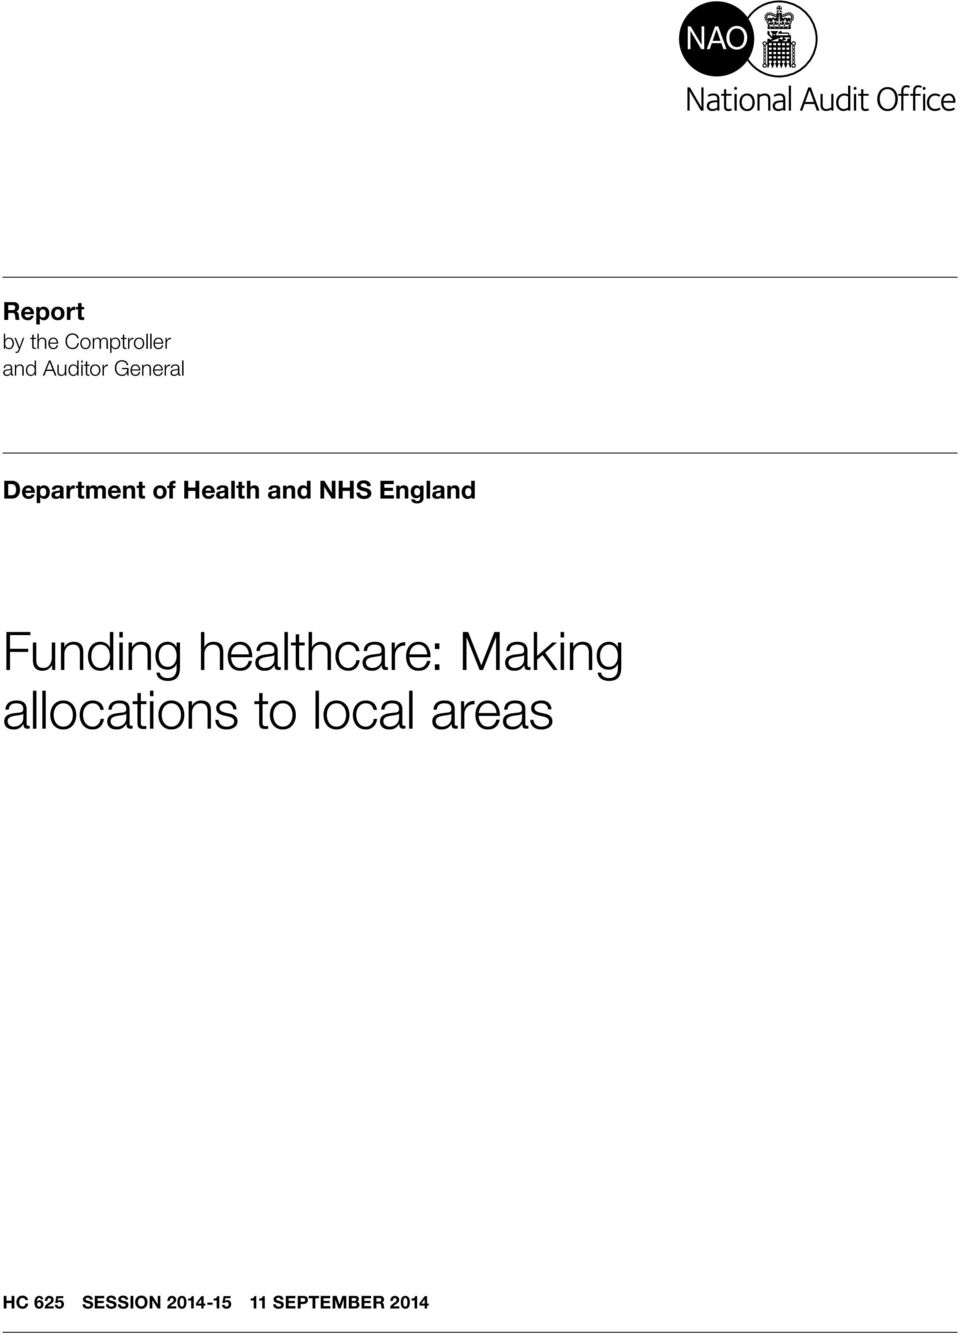 Funding healthcare: Making allocations to